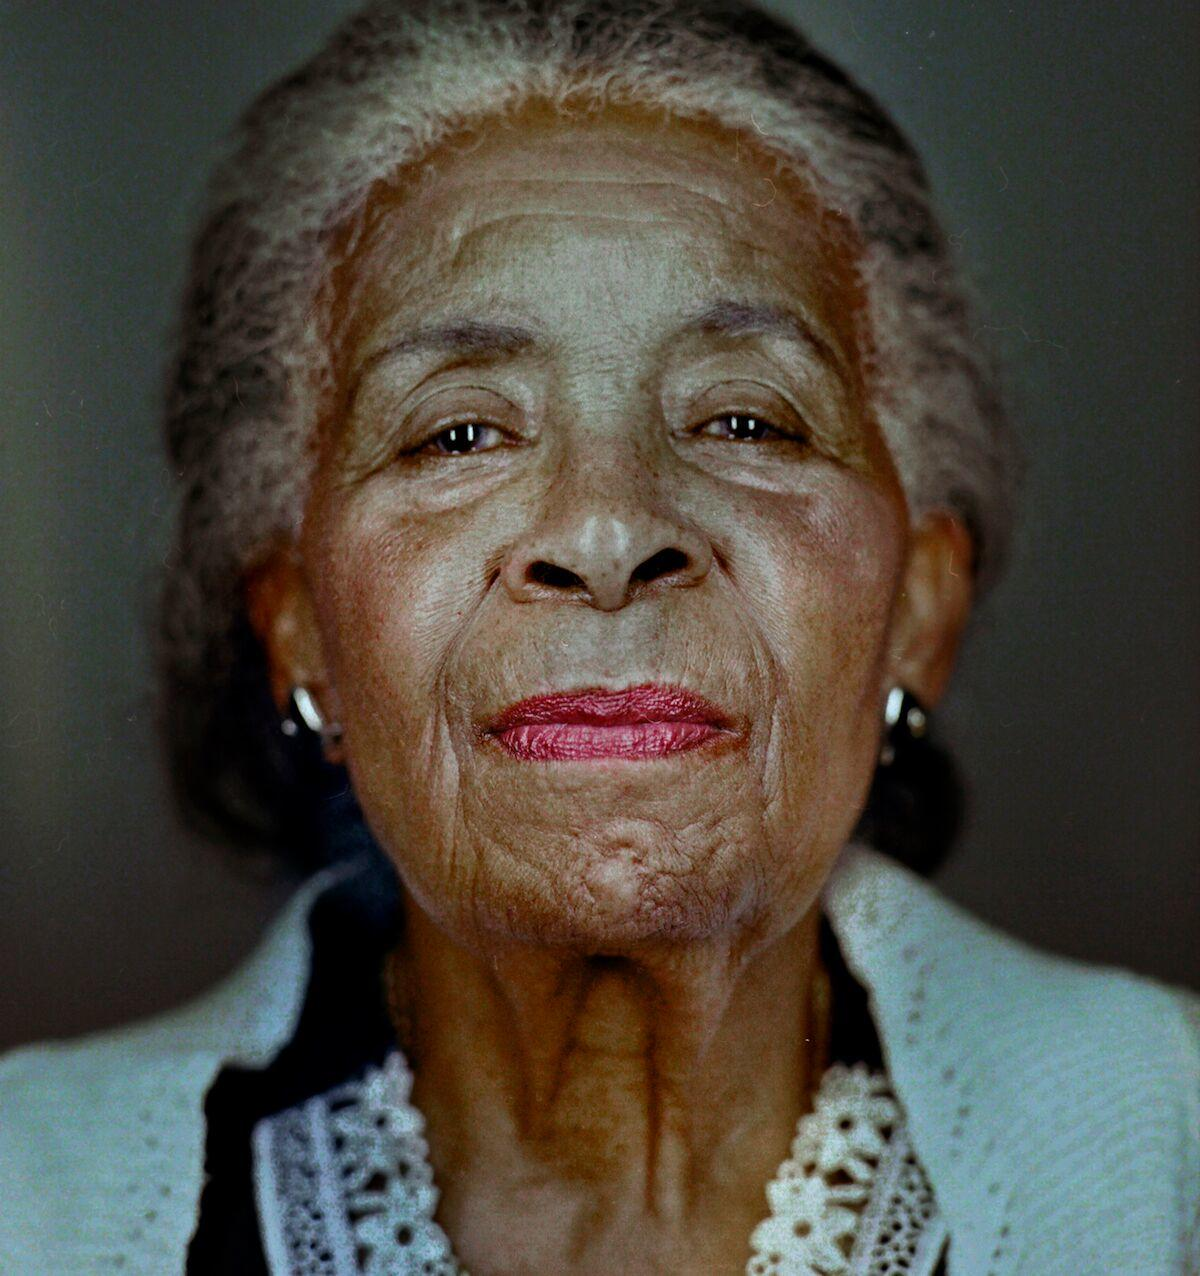 The opening of a new exhibition takes place later this month; Devotion – A Portrait of Loretta is the latest exhibition from photographer Franklyn Rodgers in which he pays homage to a figure sacred in his life: his mother, Loretta. Created over several years, the collection of images features Loretta and the circle of friends […]